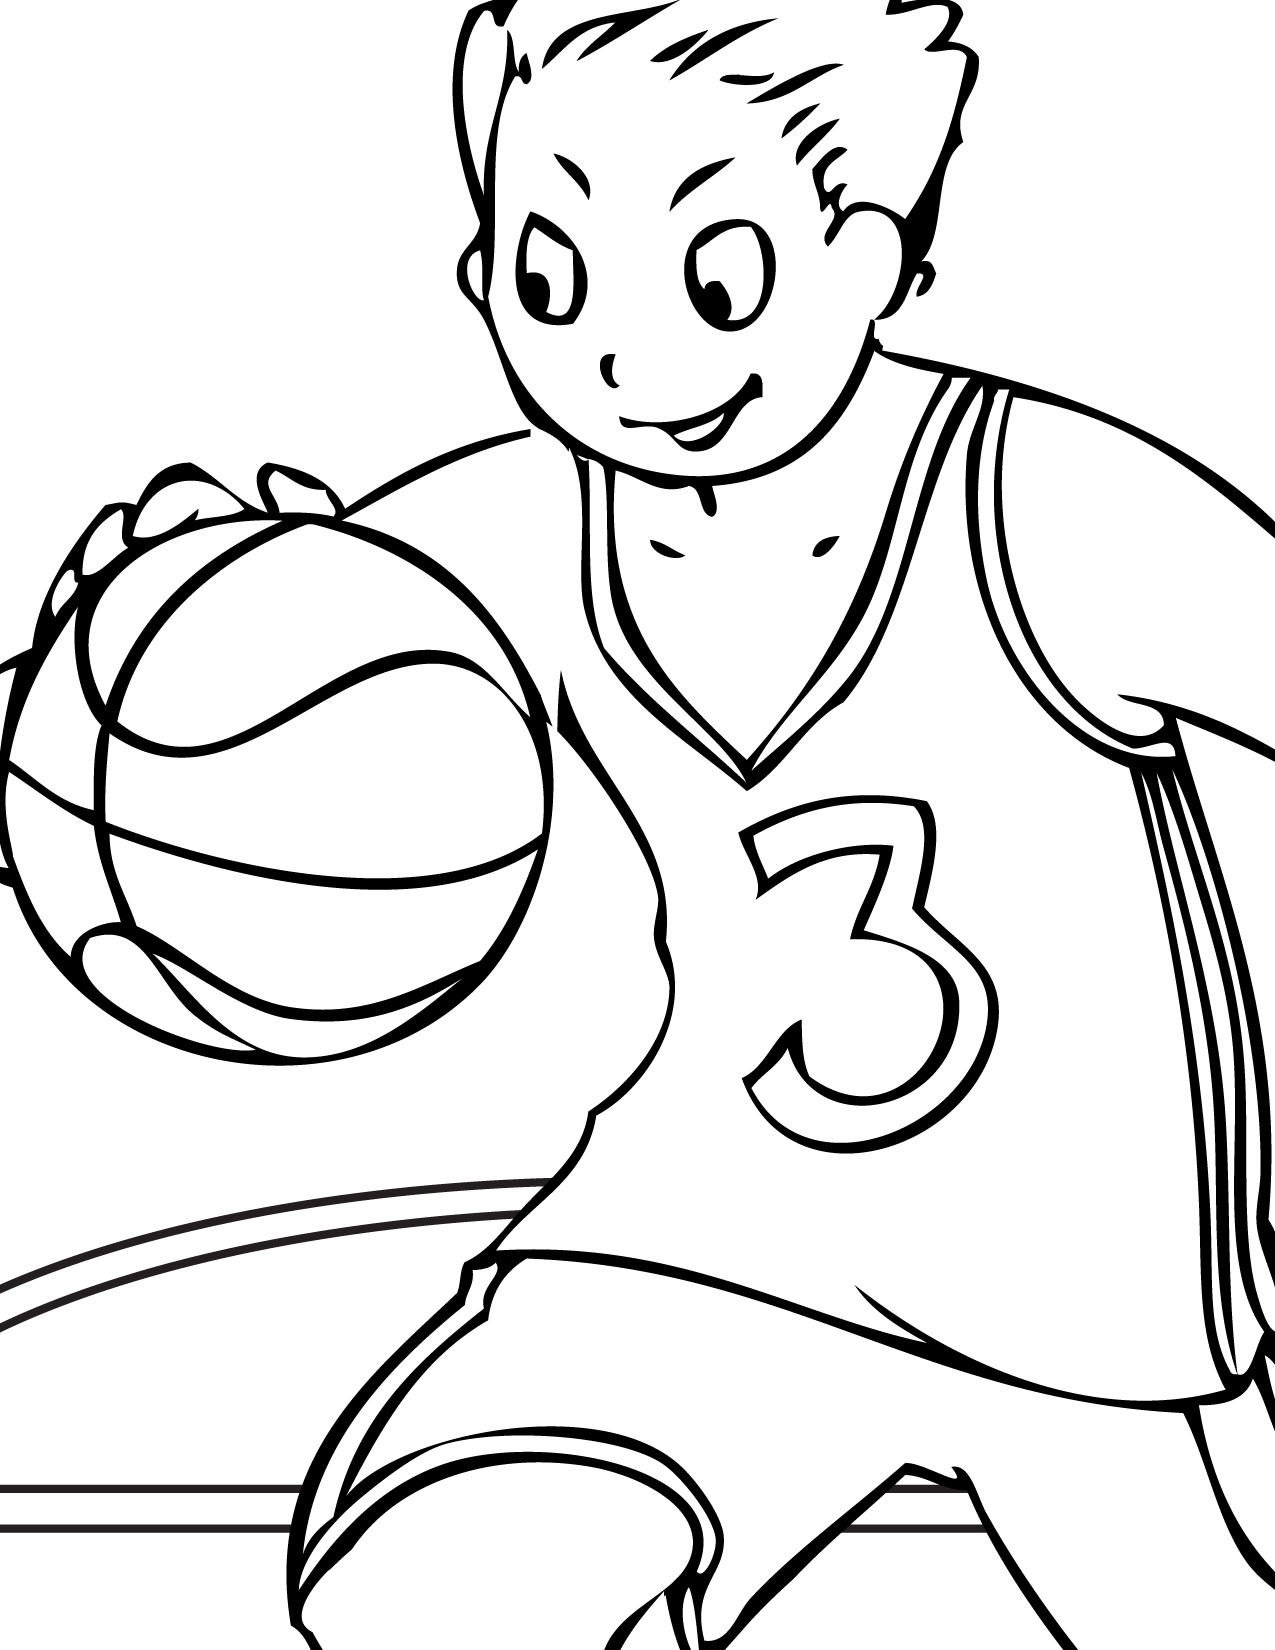 Free Coloring Pages Sports  Free Printable Volleyball Coloring Pages For Kids